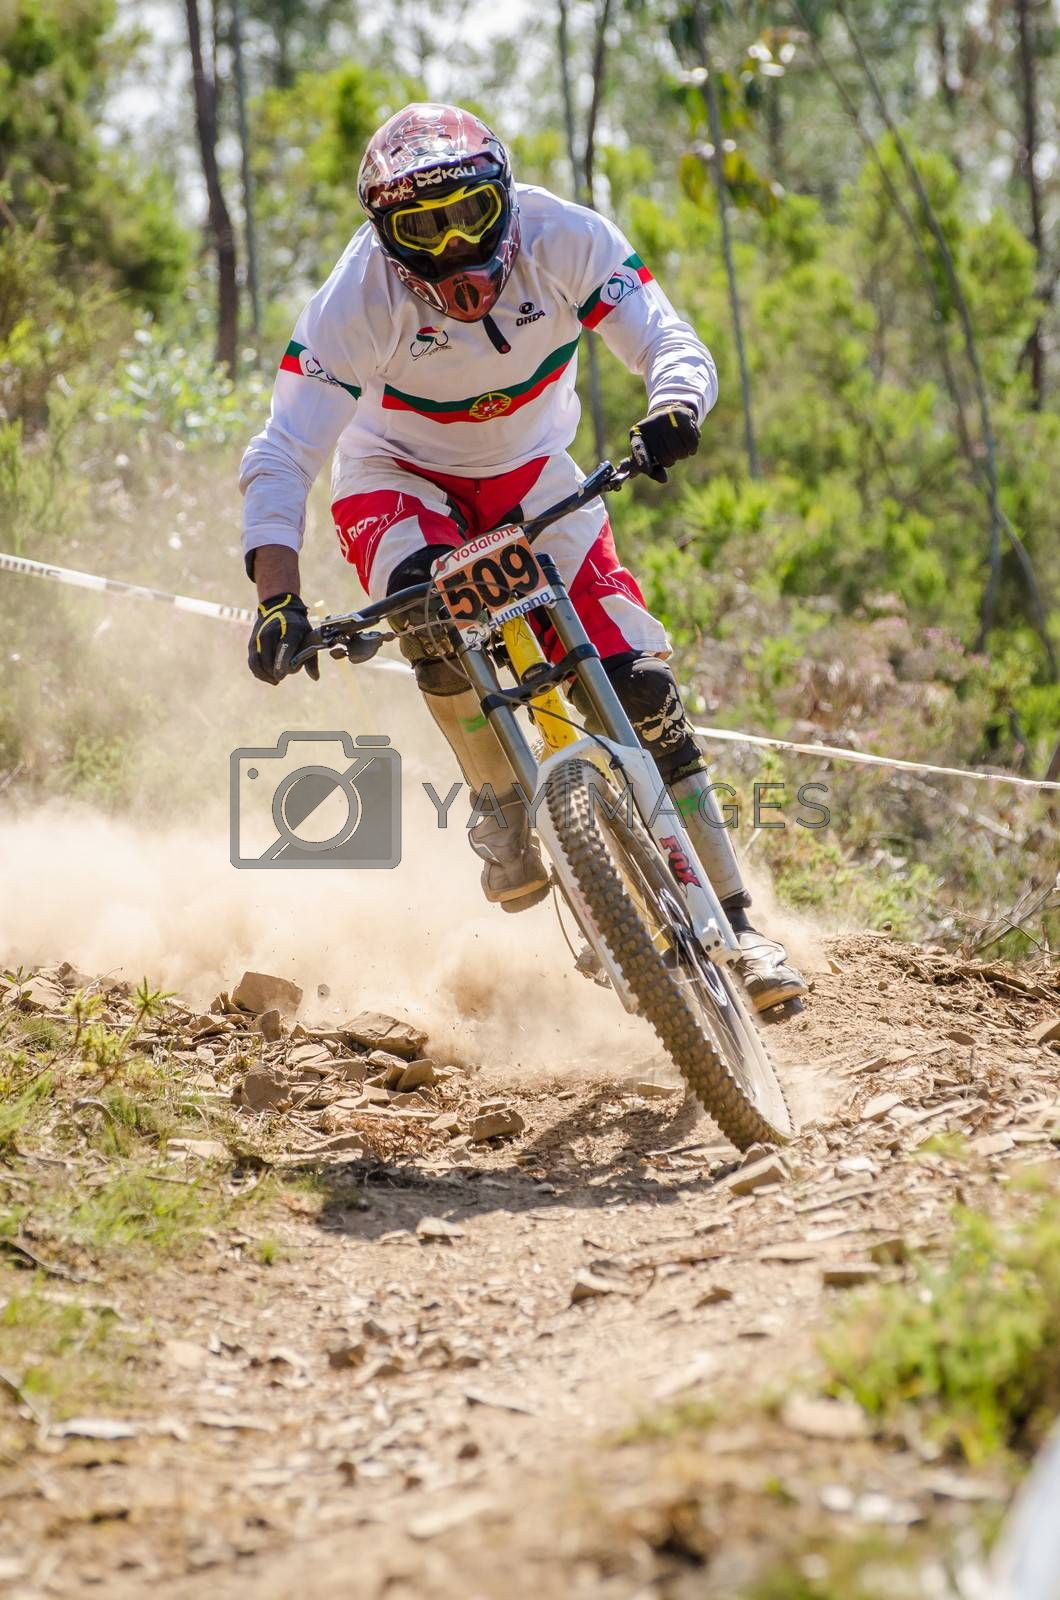 GOIS, PORTUGAL - JUNE 23: Carlos Lopes during the 4th Stage of the Taca de Portugal Downhill Vodafone on june 23, 2013 in Gois, Portugal.